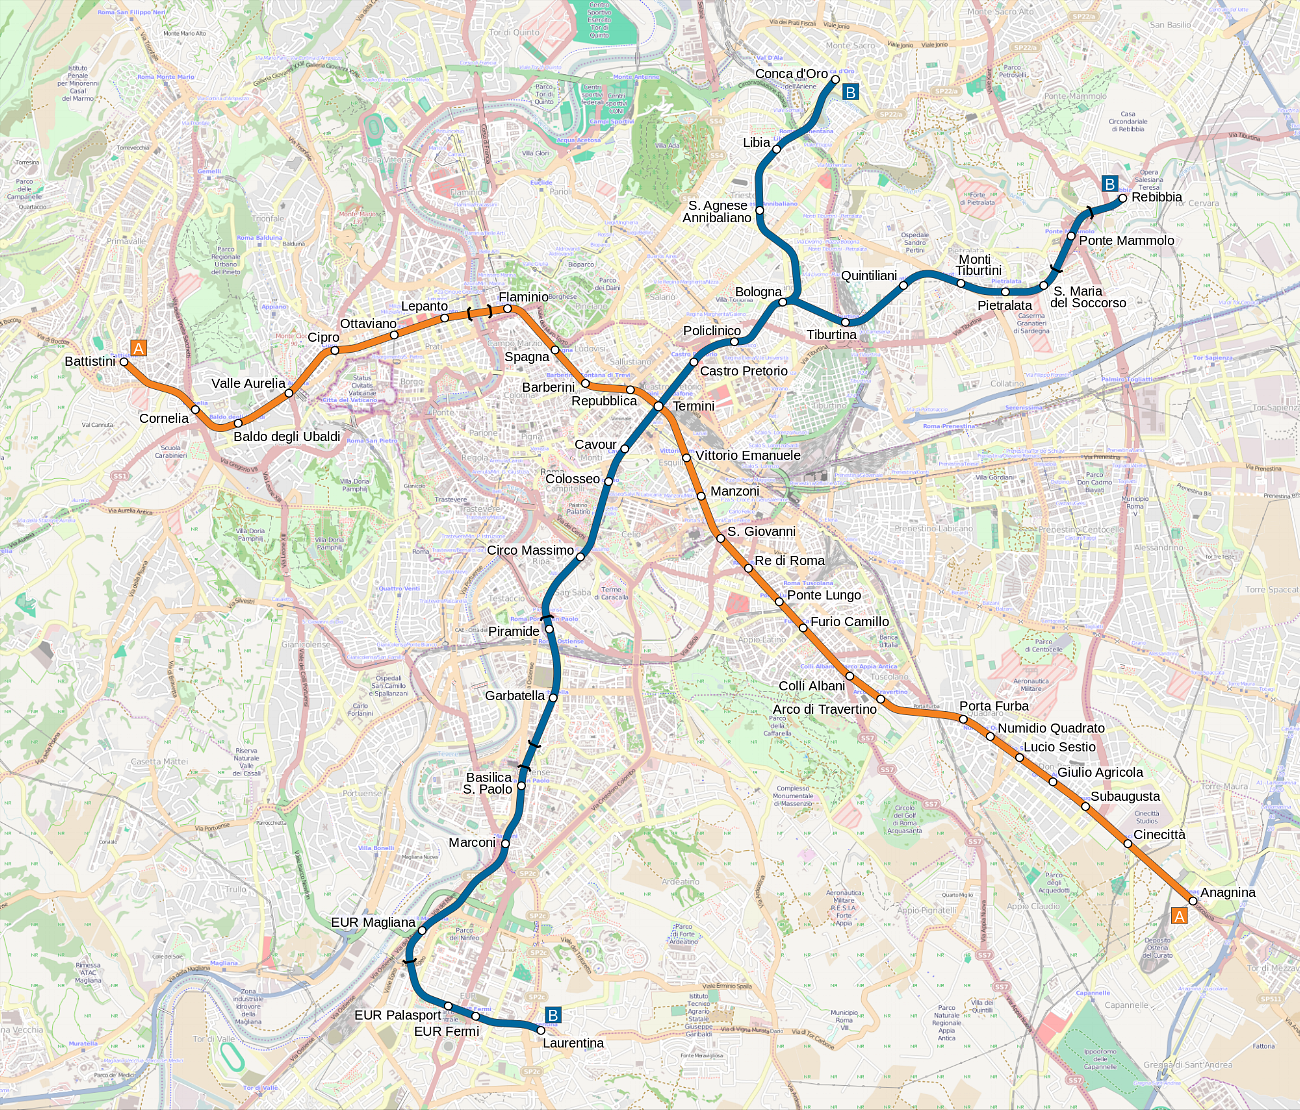 METRO MAP: - Click on the map to see a larger version of the underground Metro system in Rome. Our apartment's closest Metro station is the COLOSSEO stop, along the Blue line.